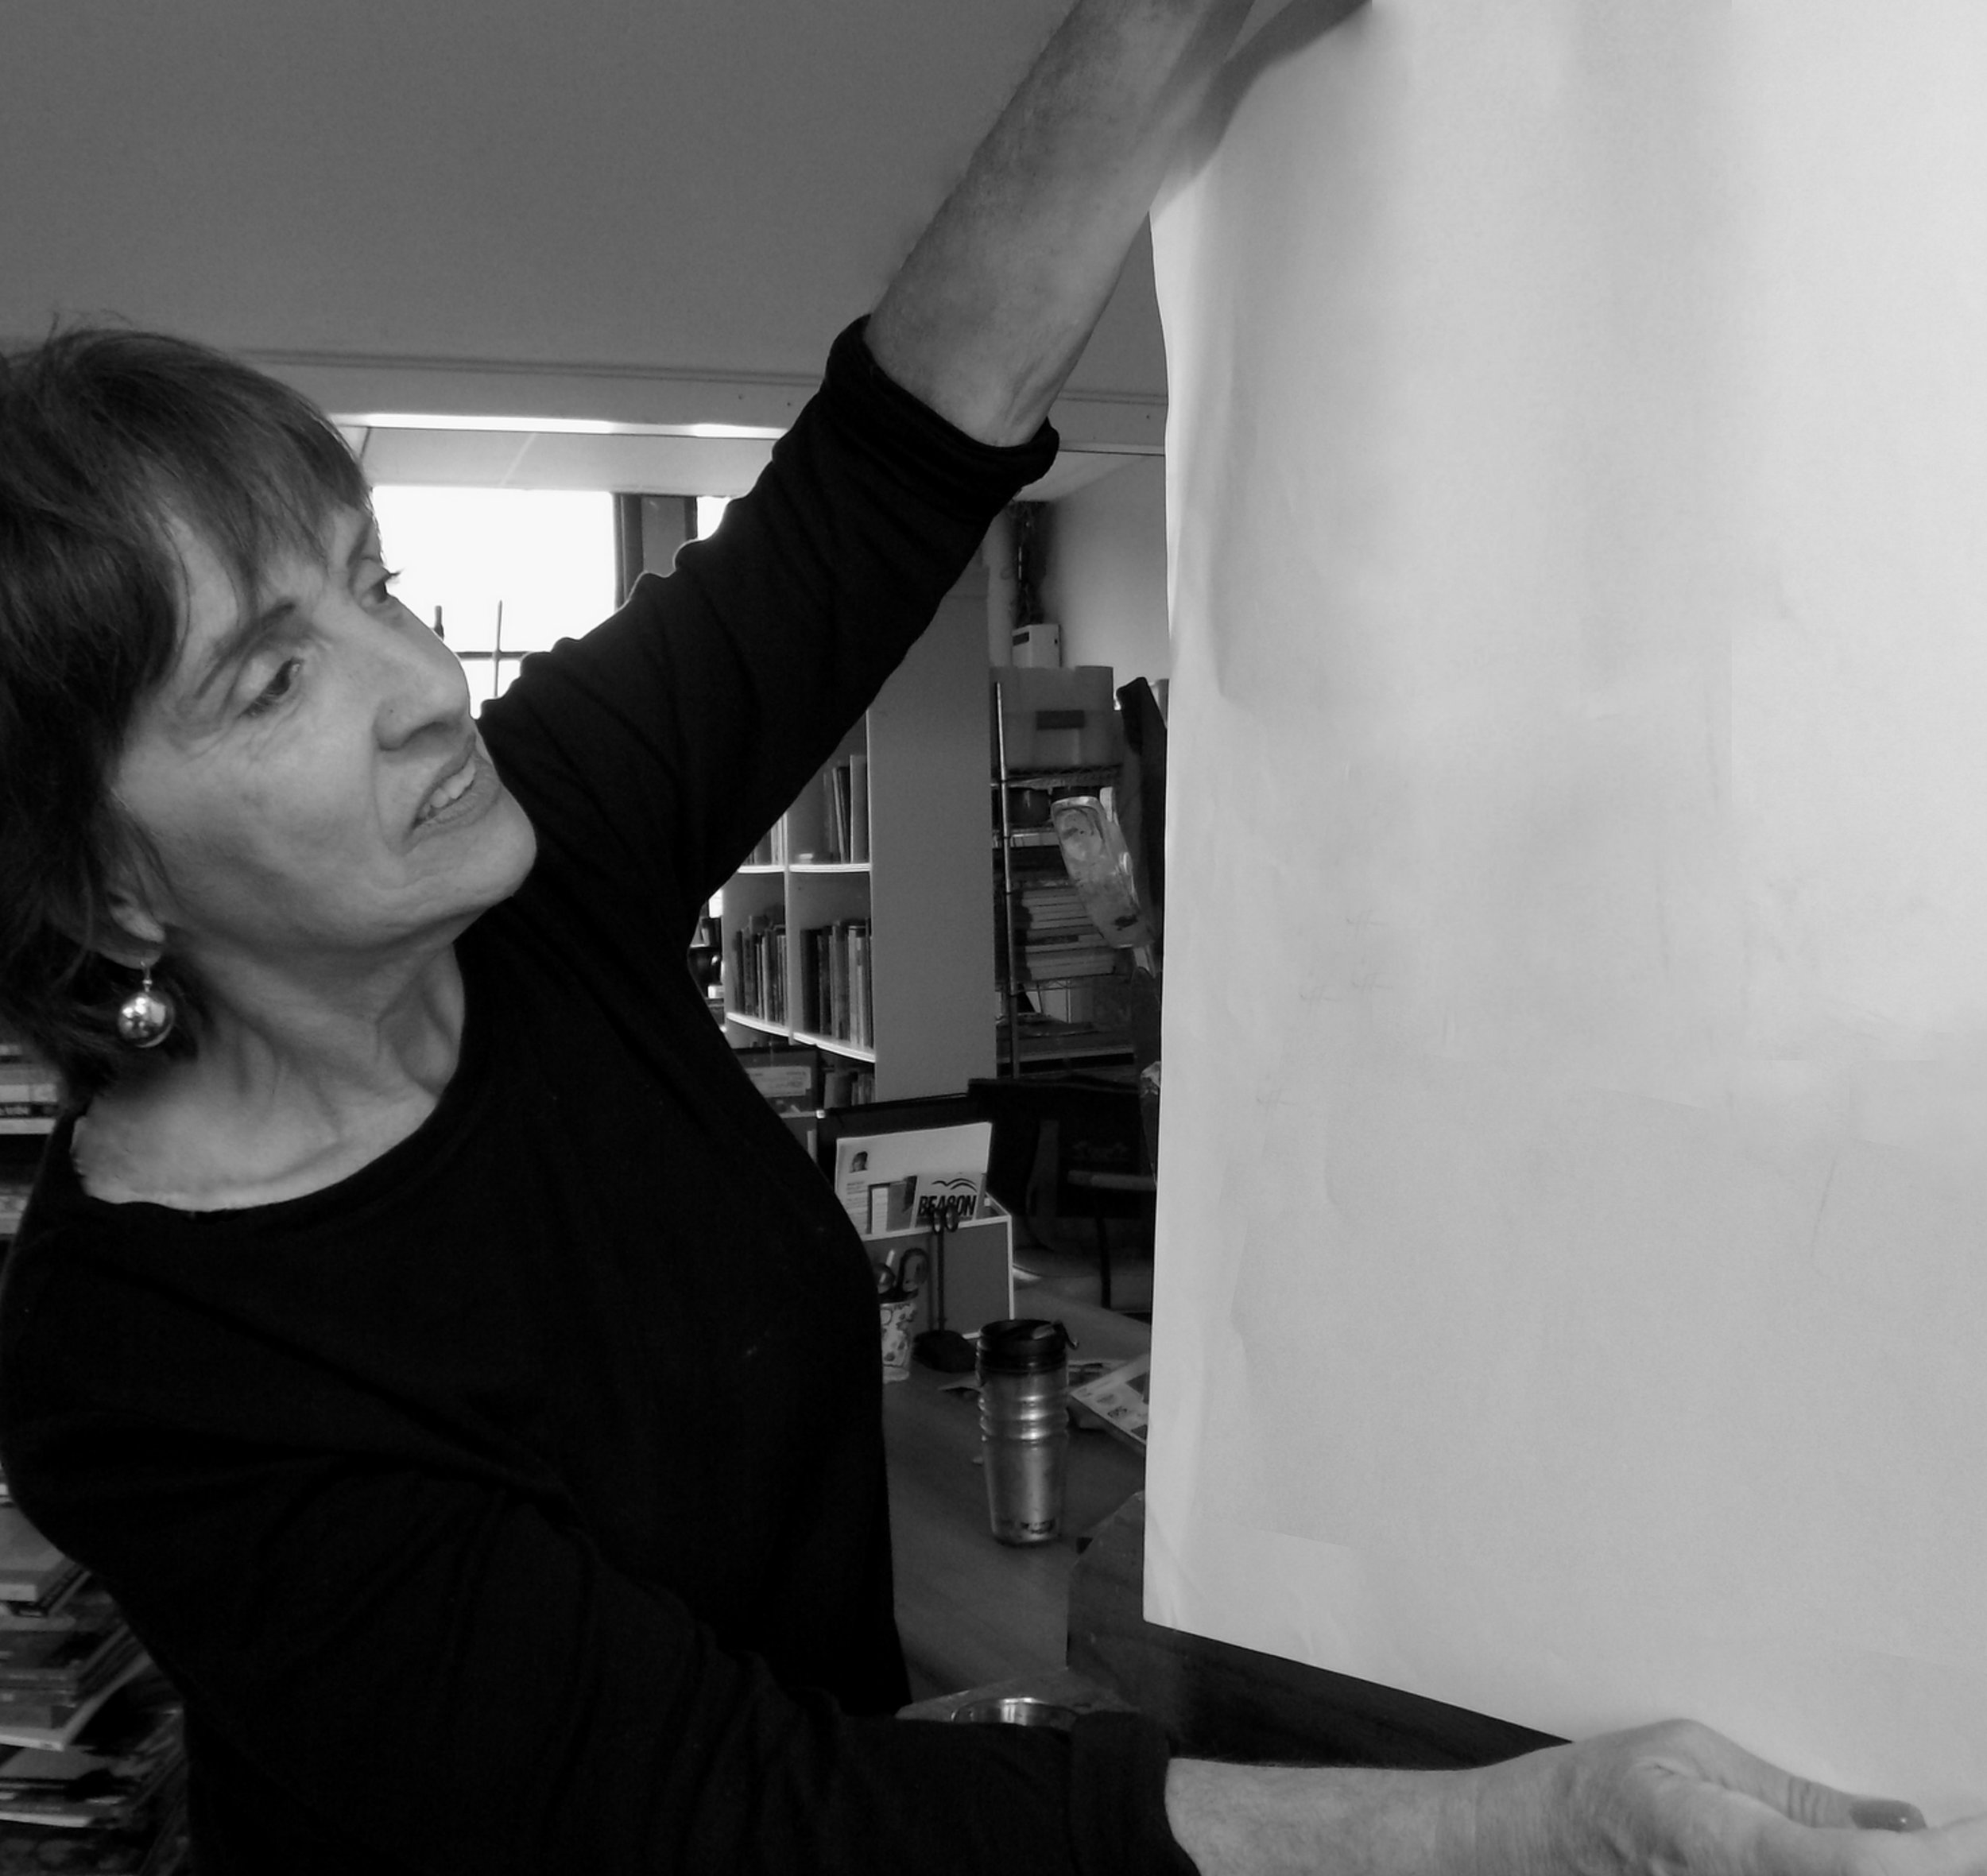 Owner and artist Maria Amor in The Atelier Room 205. Call or email her to book: (646) 705-3833 AtelierRoom205@gmail.com